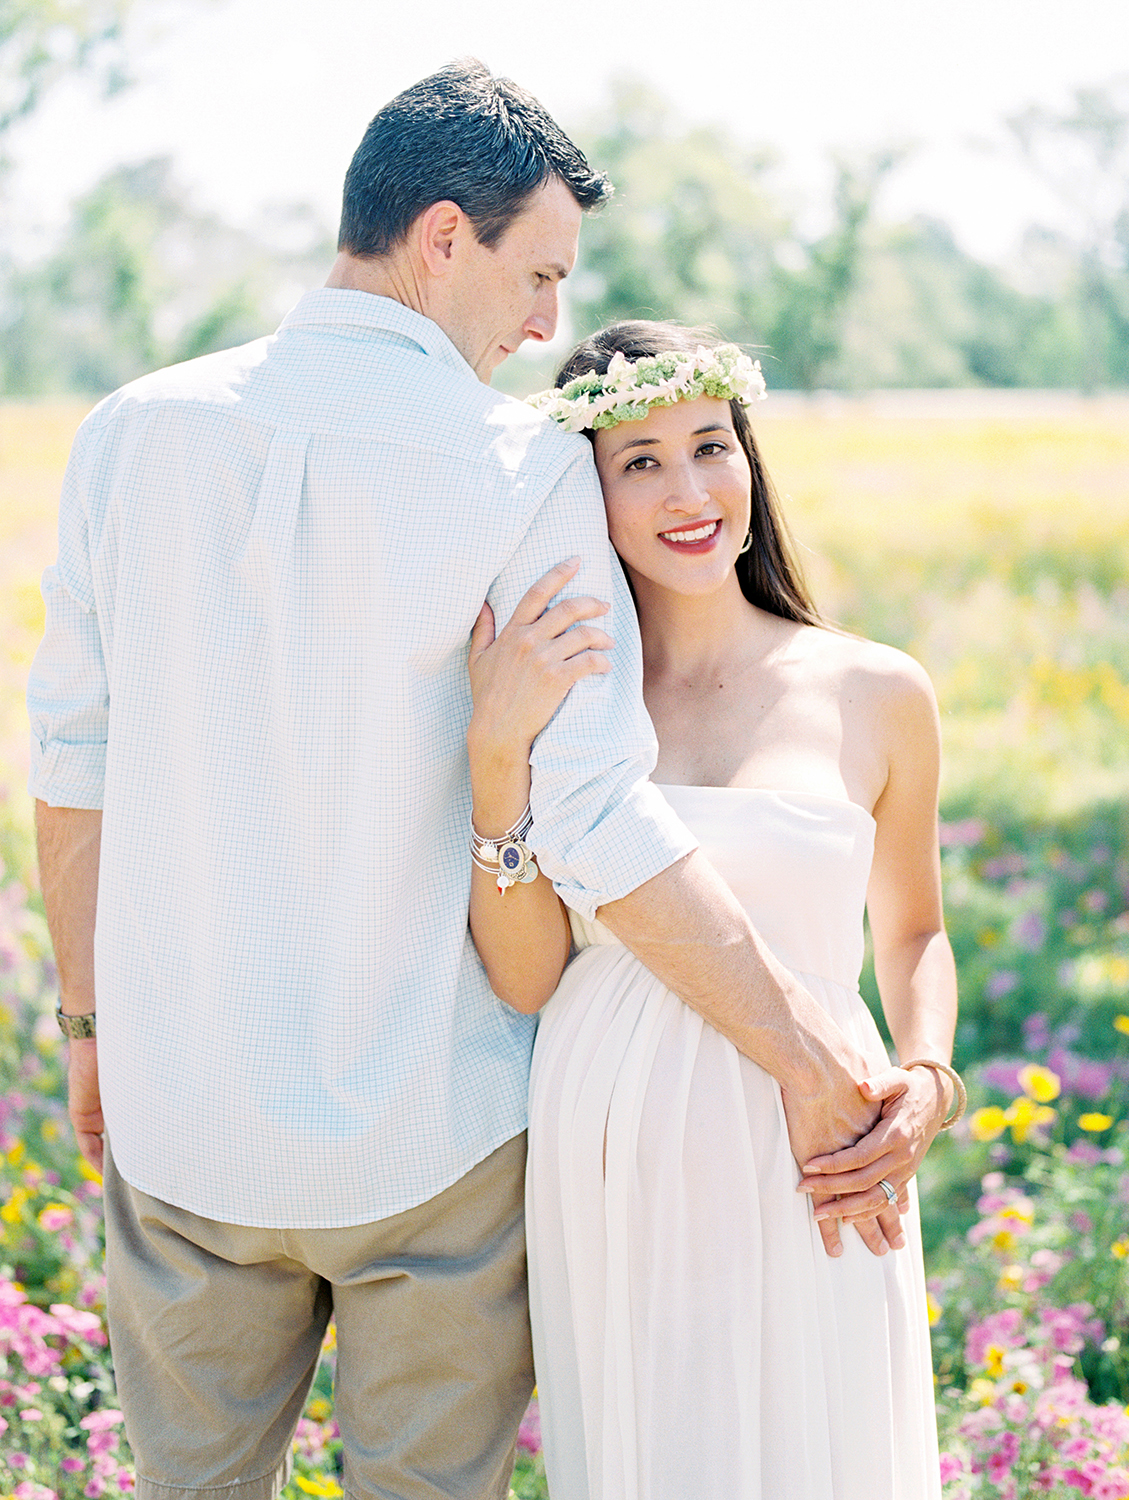 Family Maternity Session in a Flower Field- Lisa Silva Photography- Jacksonville and St. Augustine Florida Fine Art Film Photography- 21.jpg